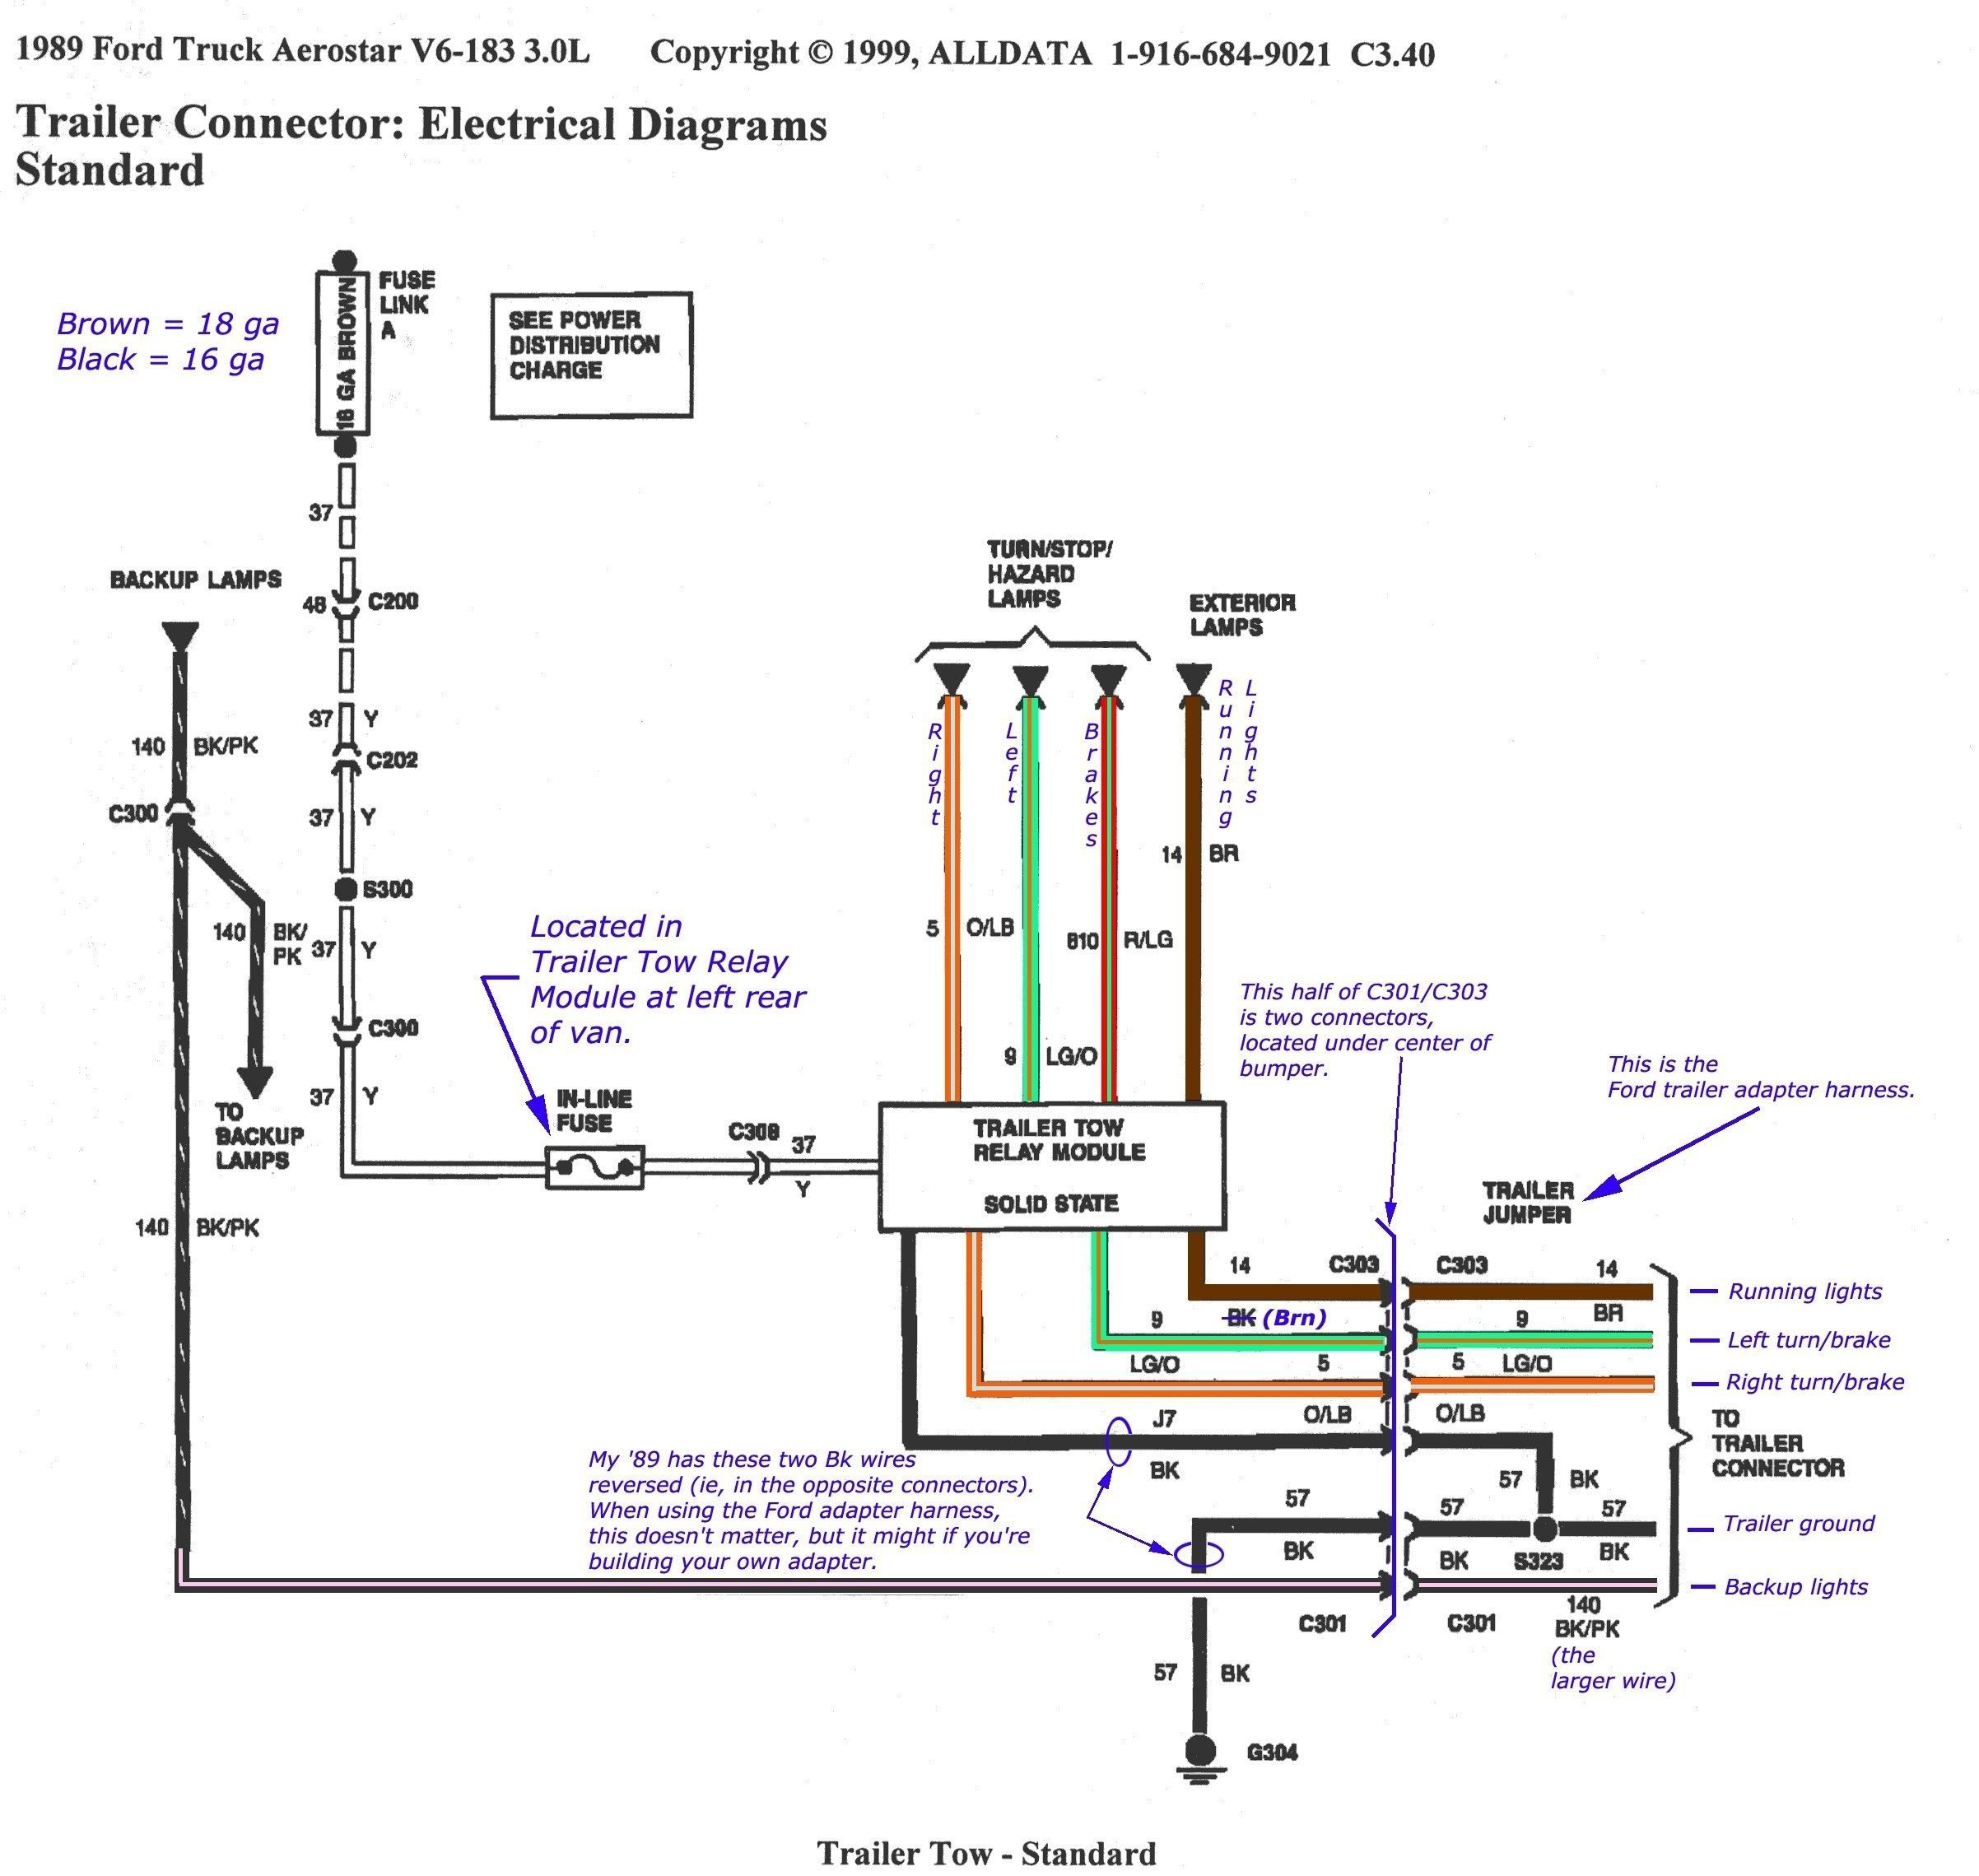 Trailer Wiring Diagram Za | Wiring Diagram - Trailer Wiring Diagram Za